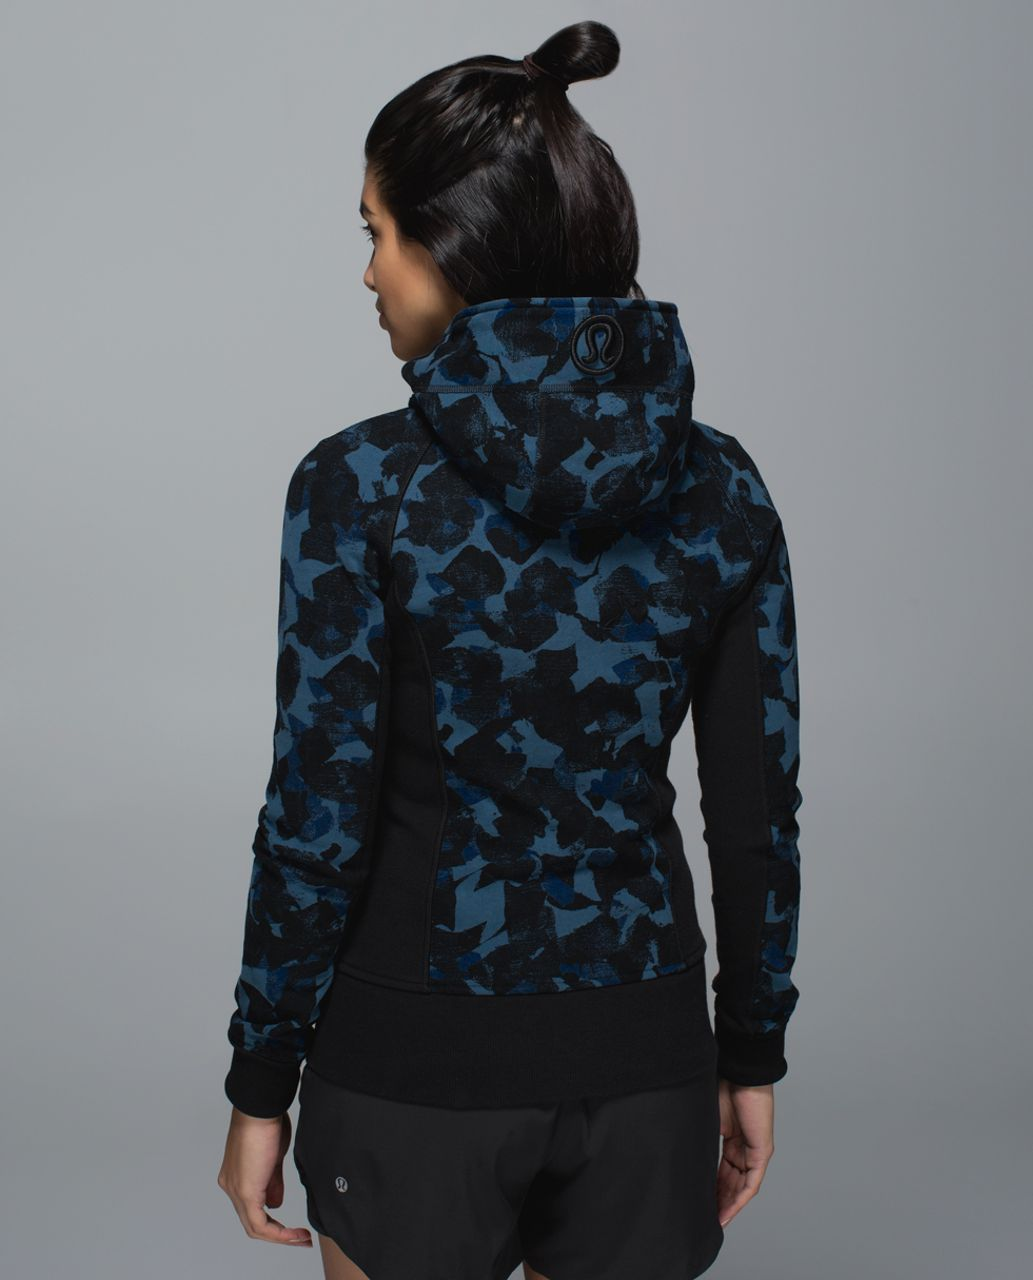 Lululemon Scuba Hoodie II - Jumbo Mystic Jungle Hawk Blue Harbor Blue